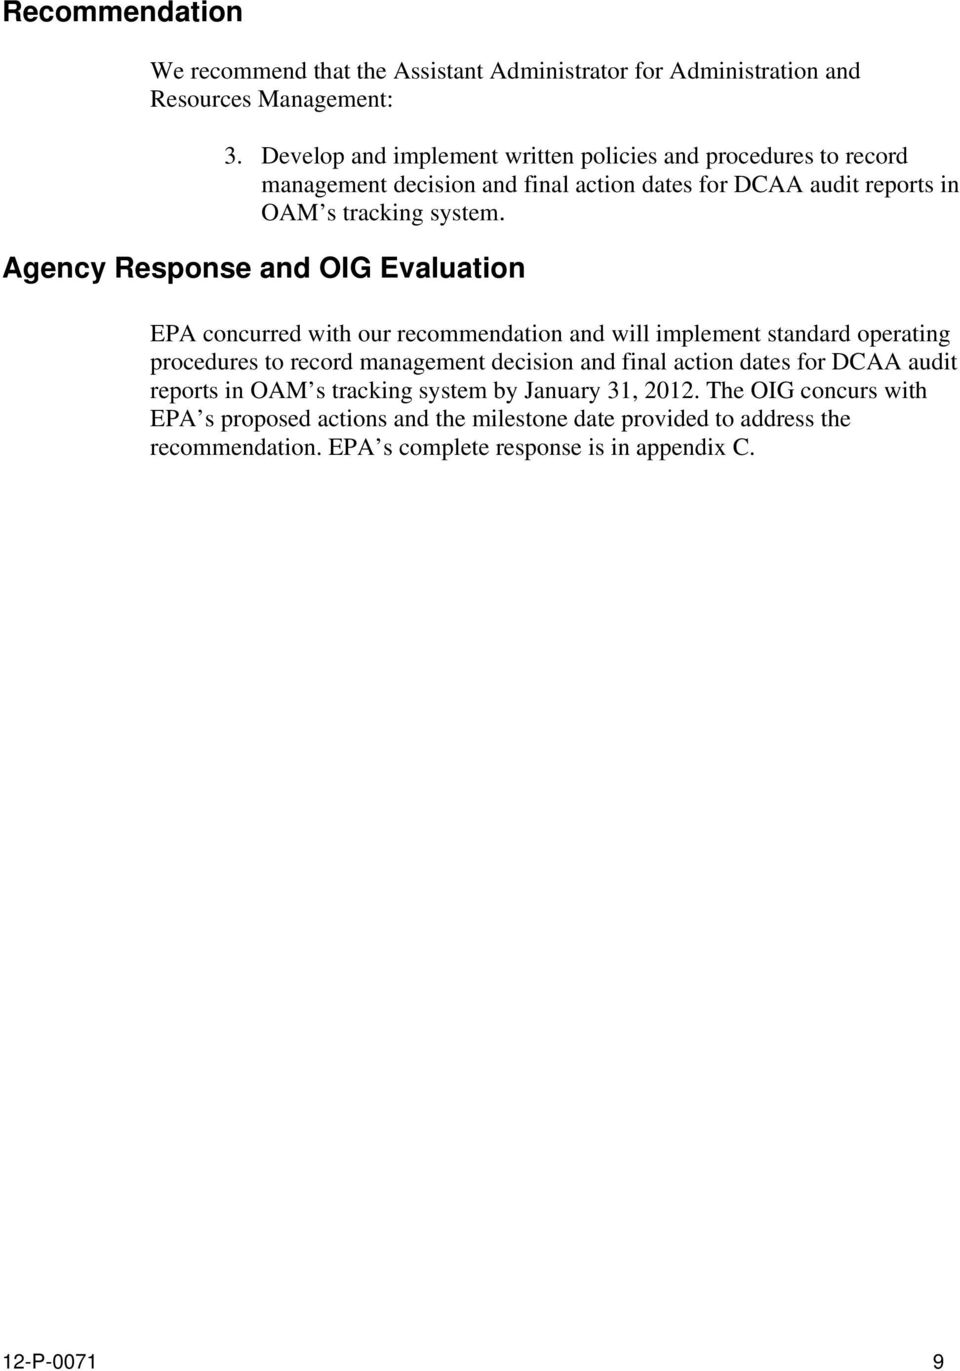 Agency Response and OIG Evaluation EPA concurred with our recommendation and will implement standard operating procedures to record management decision and final